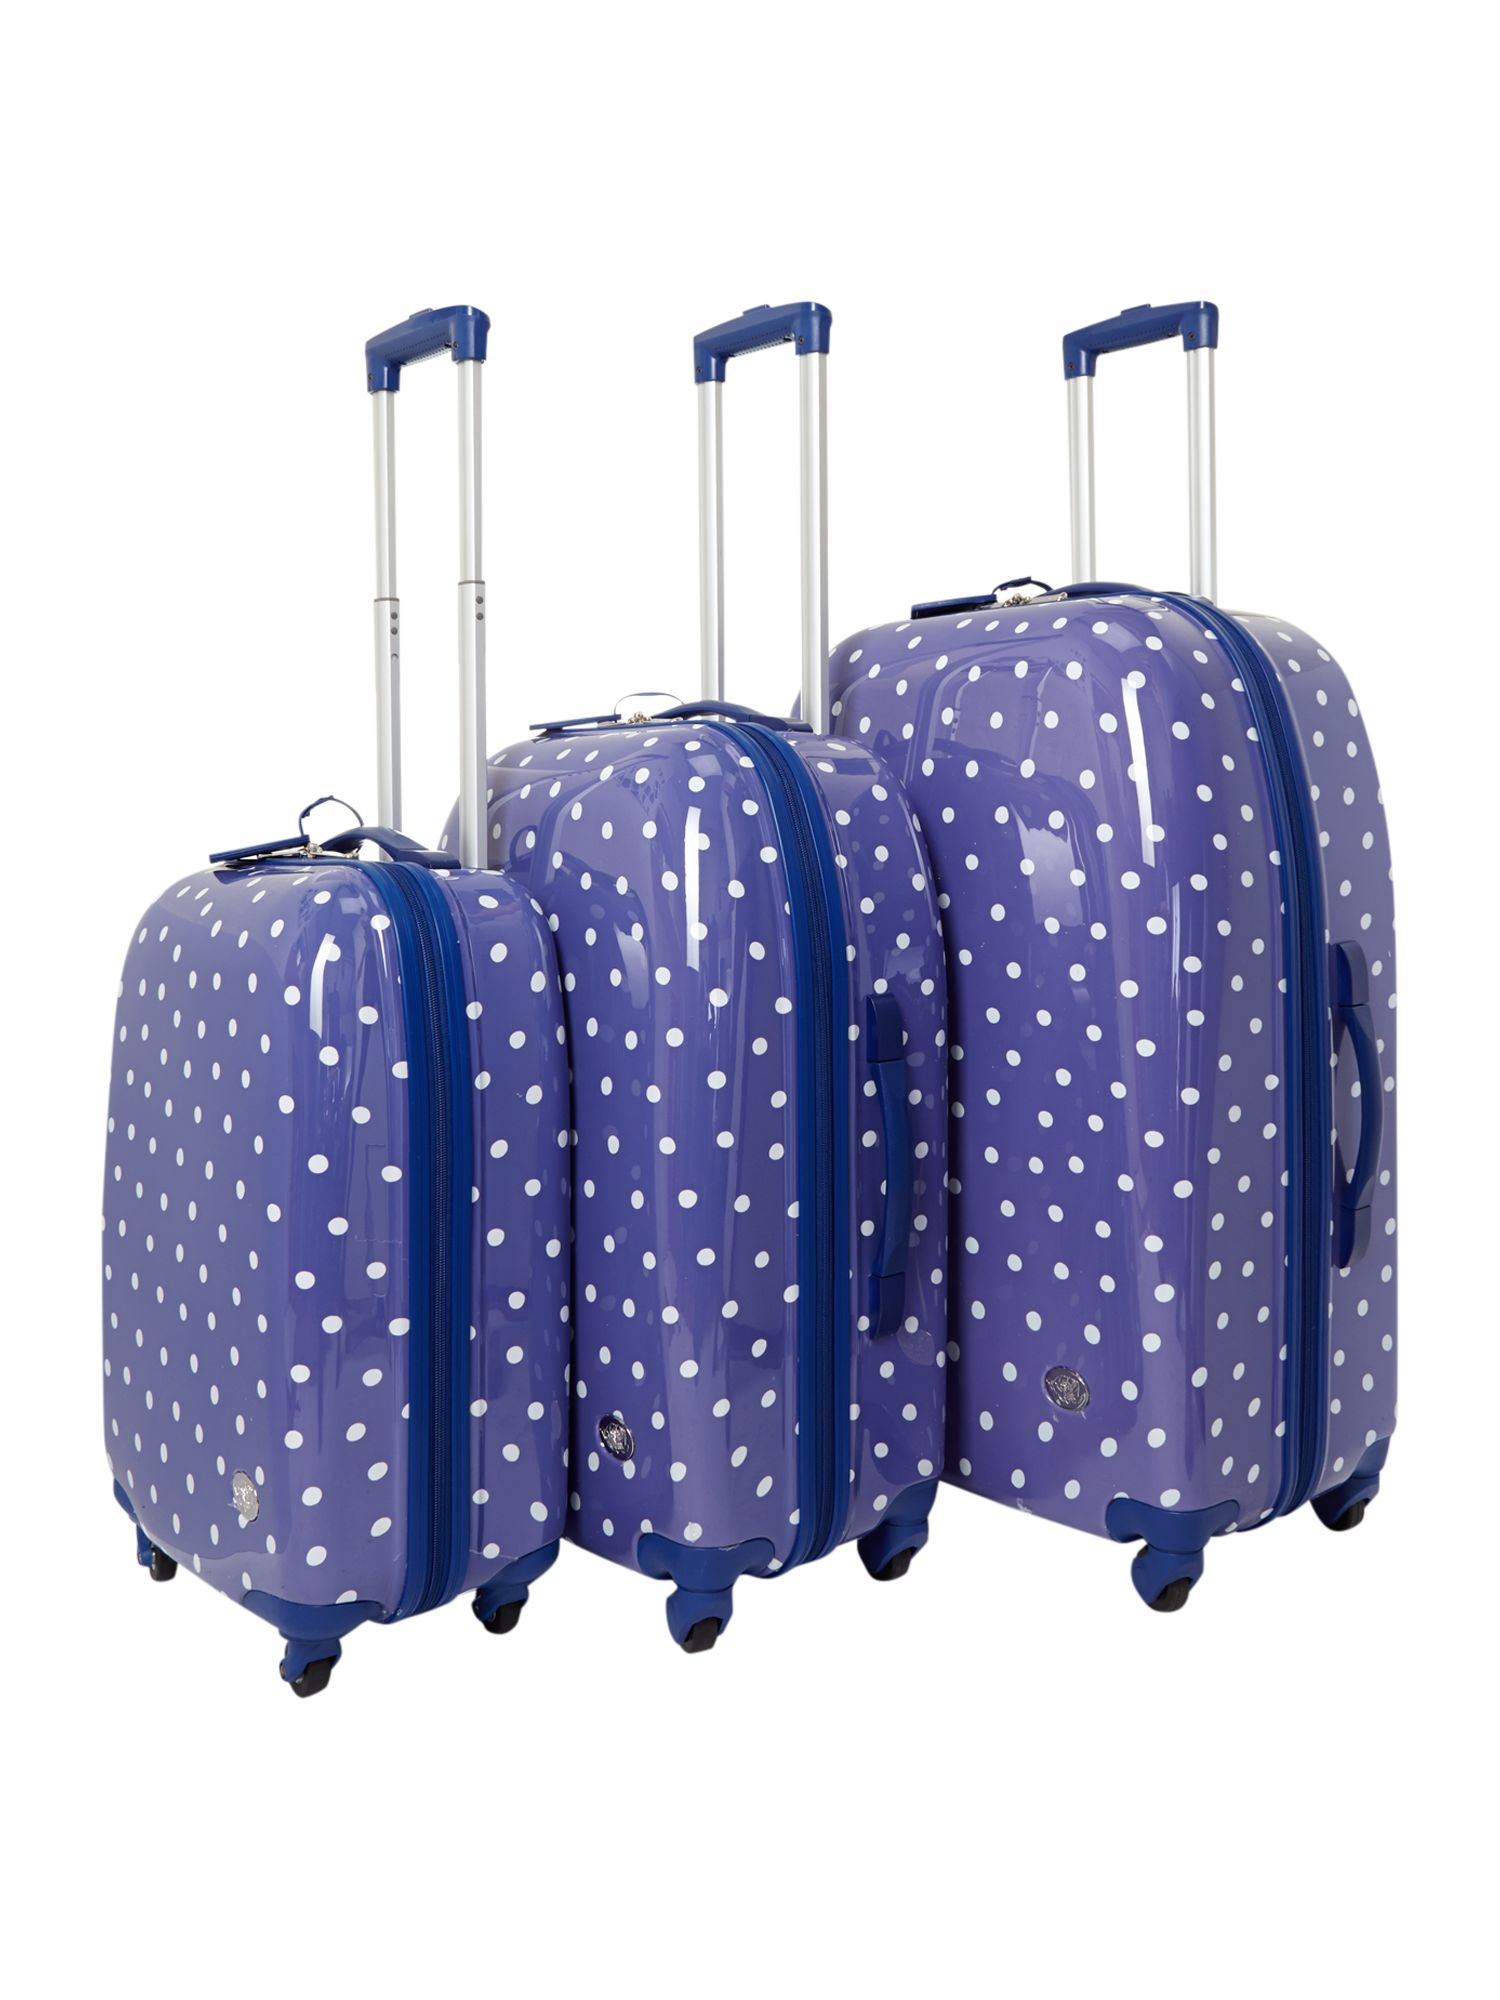 Polka dot luggage range